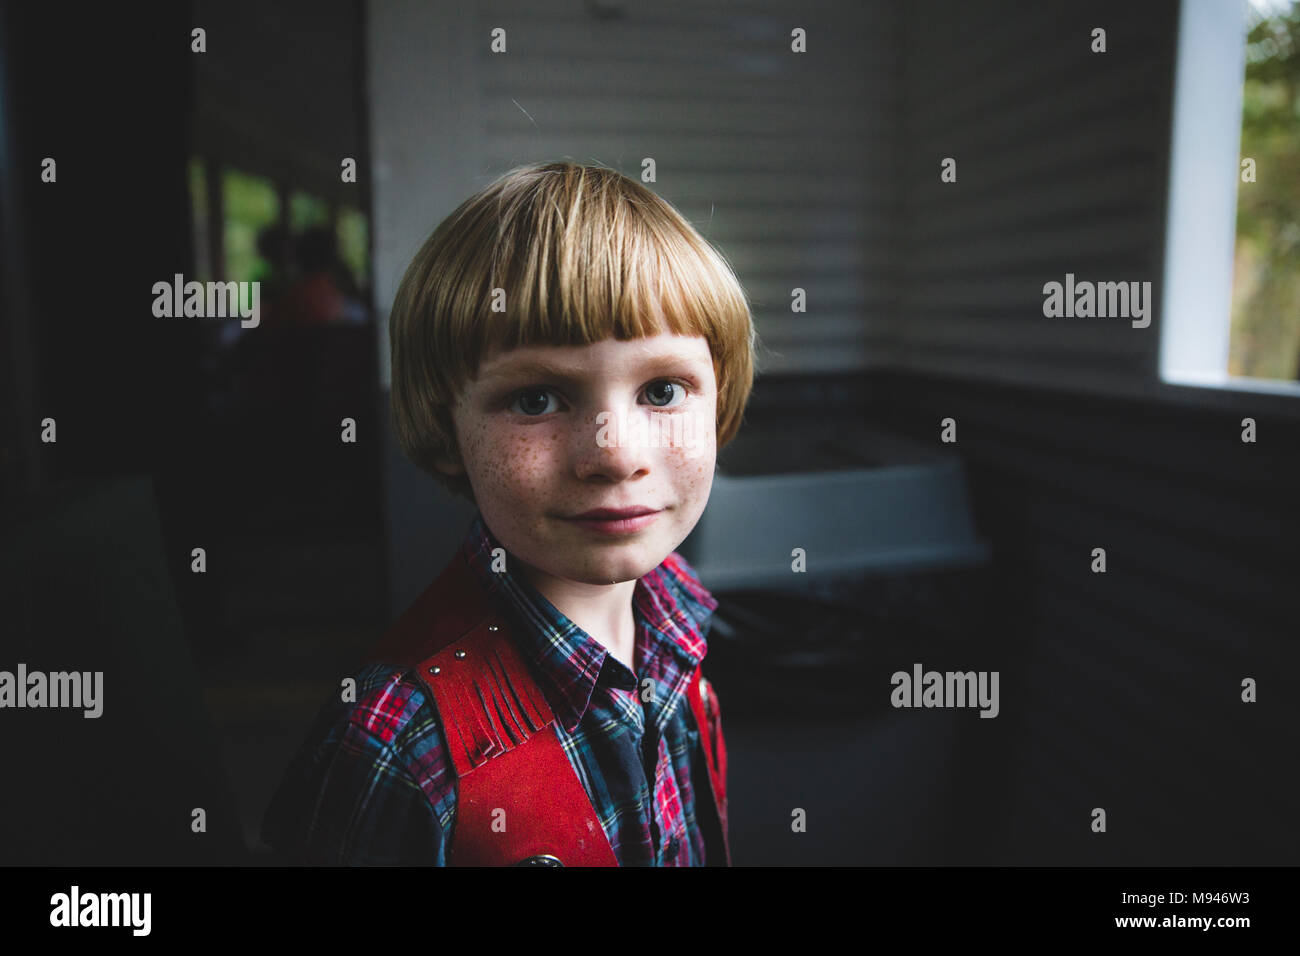 Boy with freckles looking into camera - Stock Image